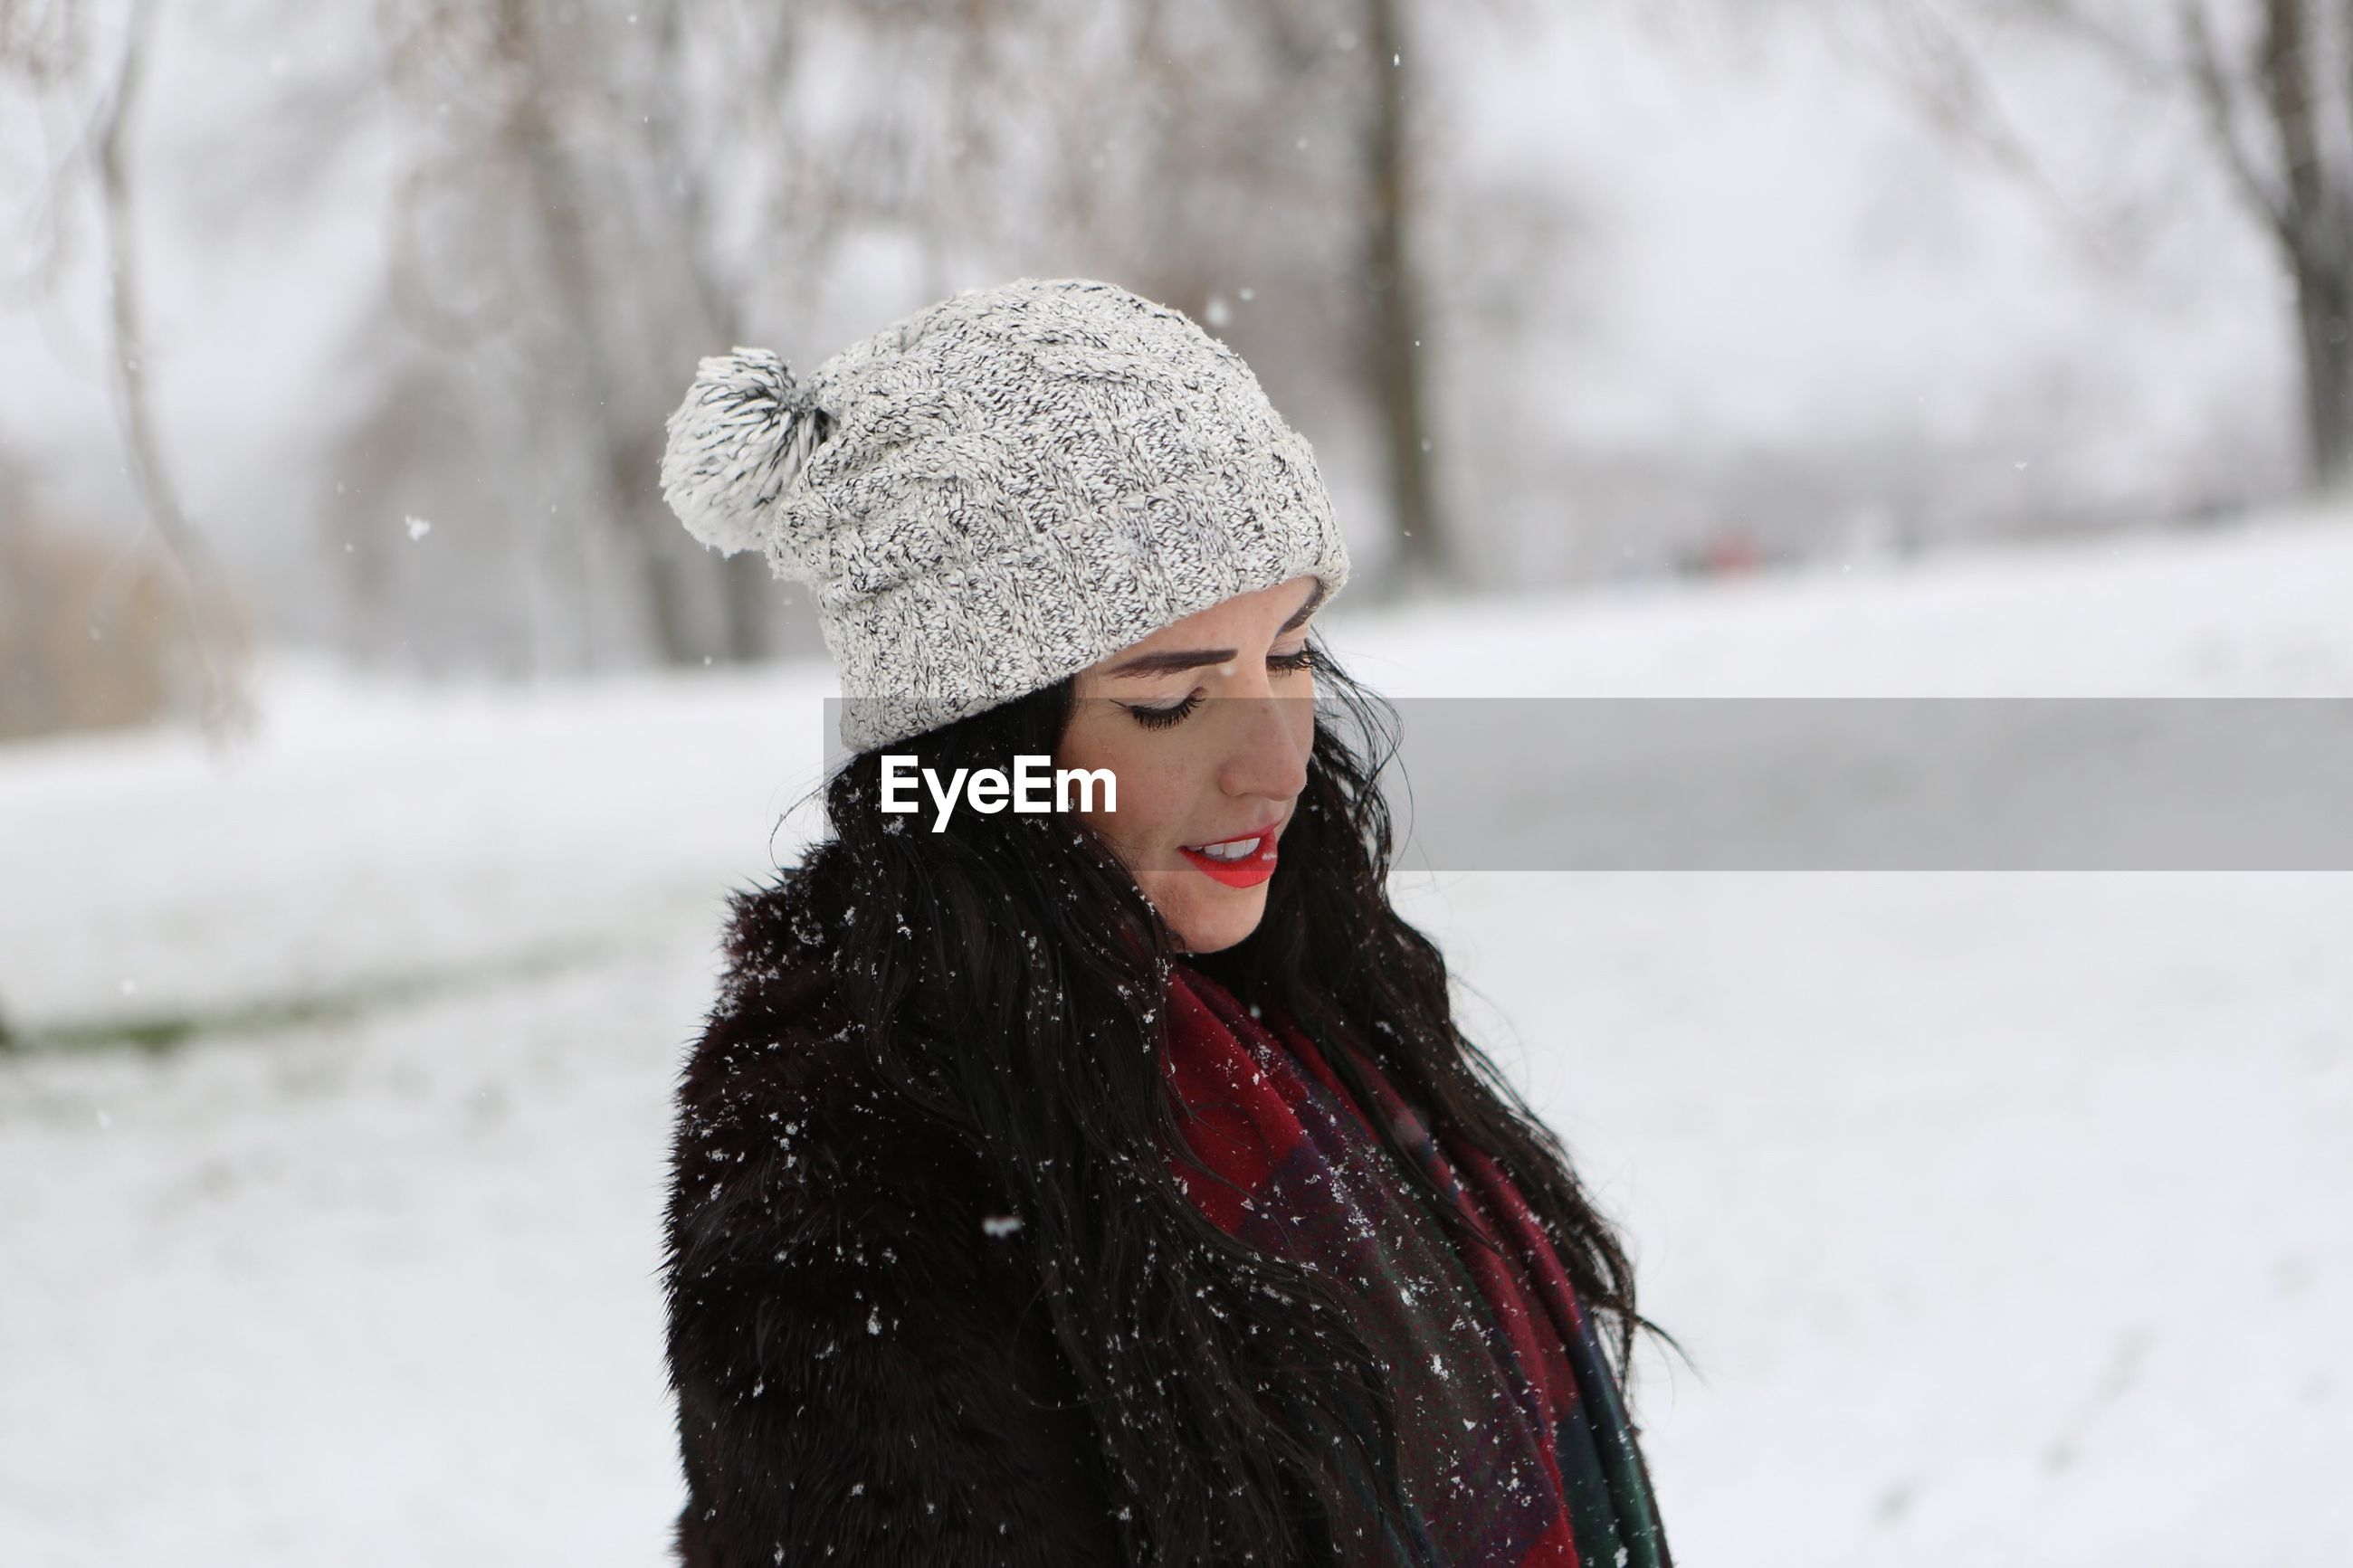 winter, snow, cold temperature, warm clothing, one person, weather, leisure activity, real people, outdoors, lifestyles, focus on foreground, nature, day, beautiful woman, young women, scarf, snowing, young adult, smiling, beauty in nature, close-up, people